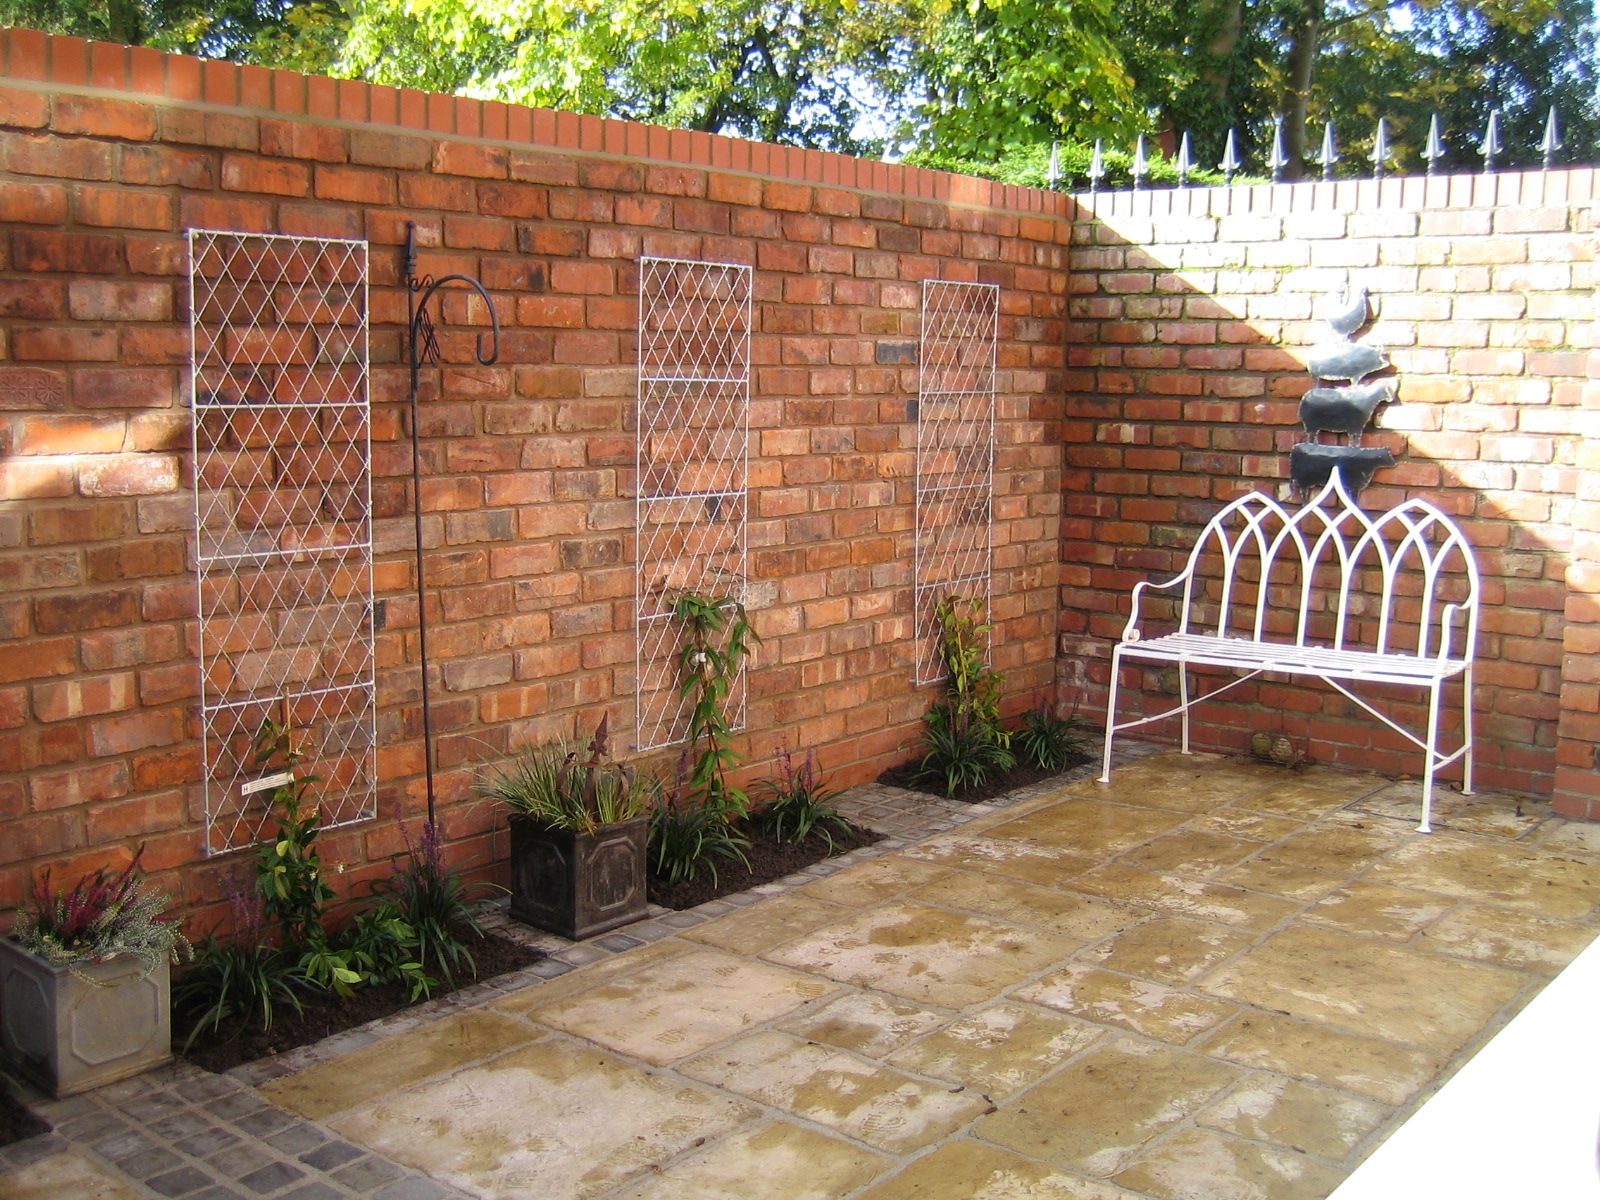 9 garden wall with 18 piers and a Dog tooth feature finished